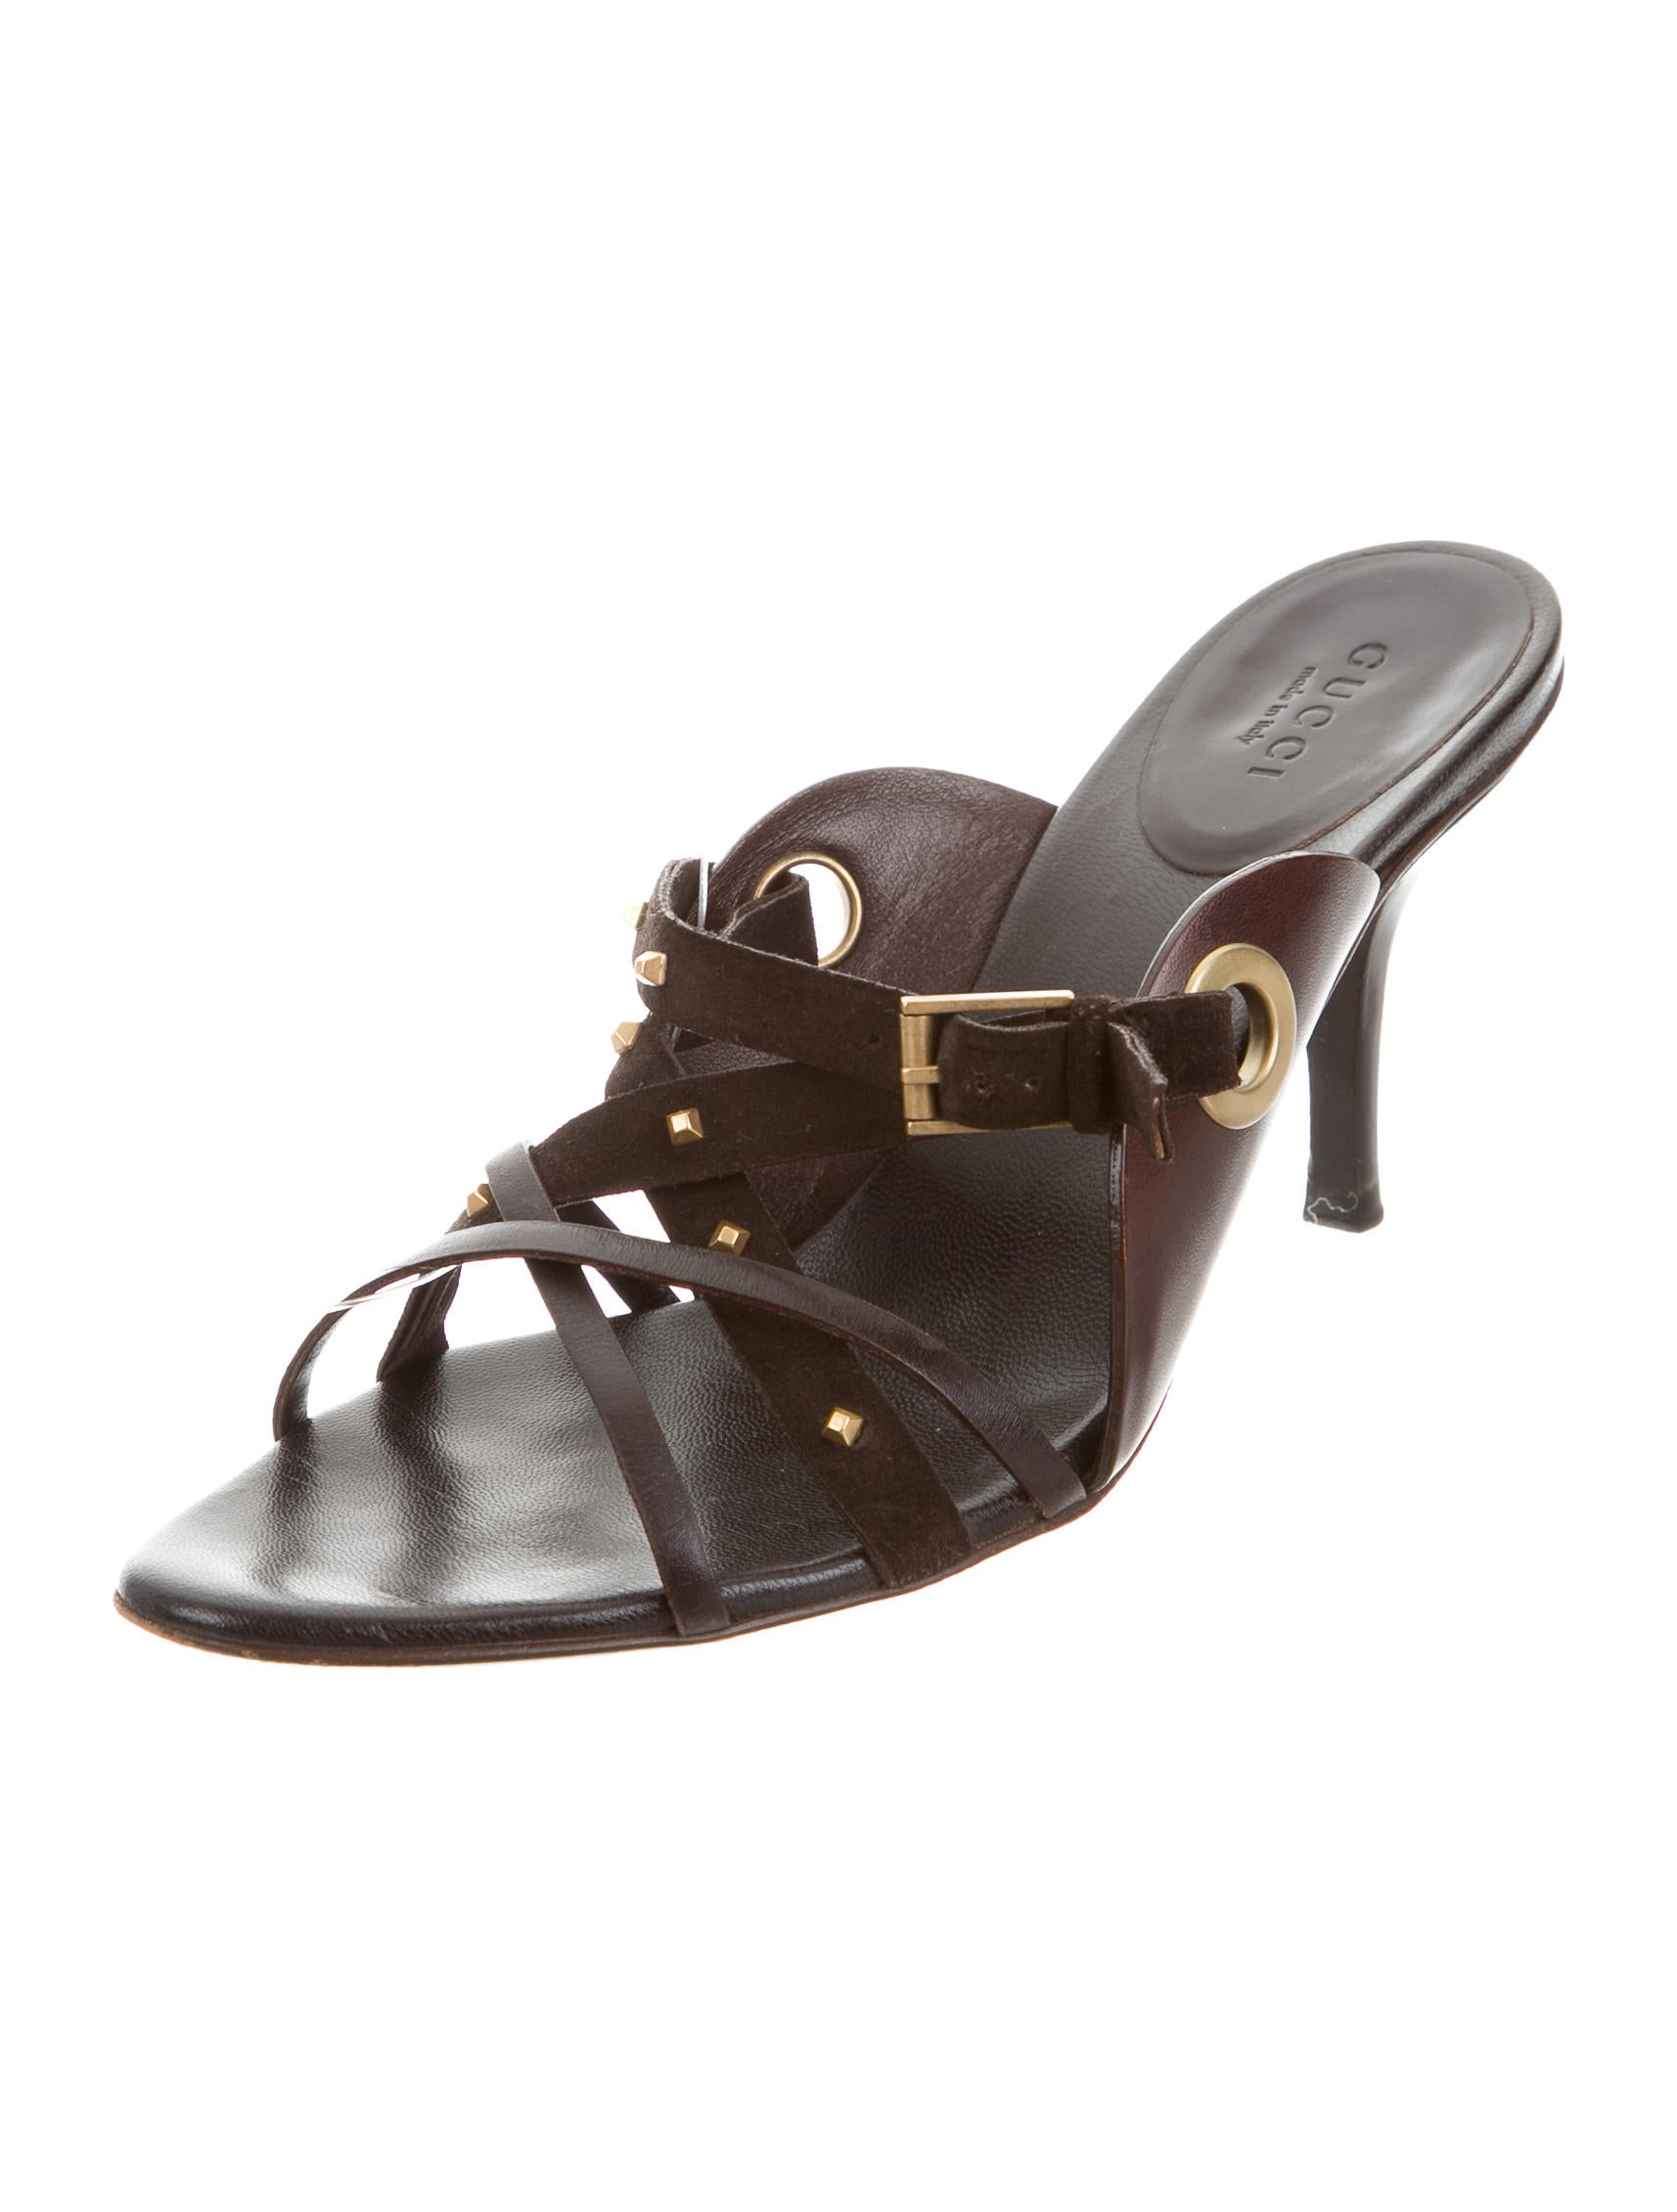 Gucci Leather Slide Sandals - Shoes - GUC129718 | The RealReal